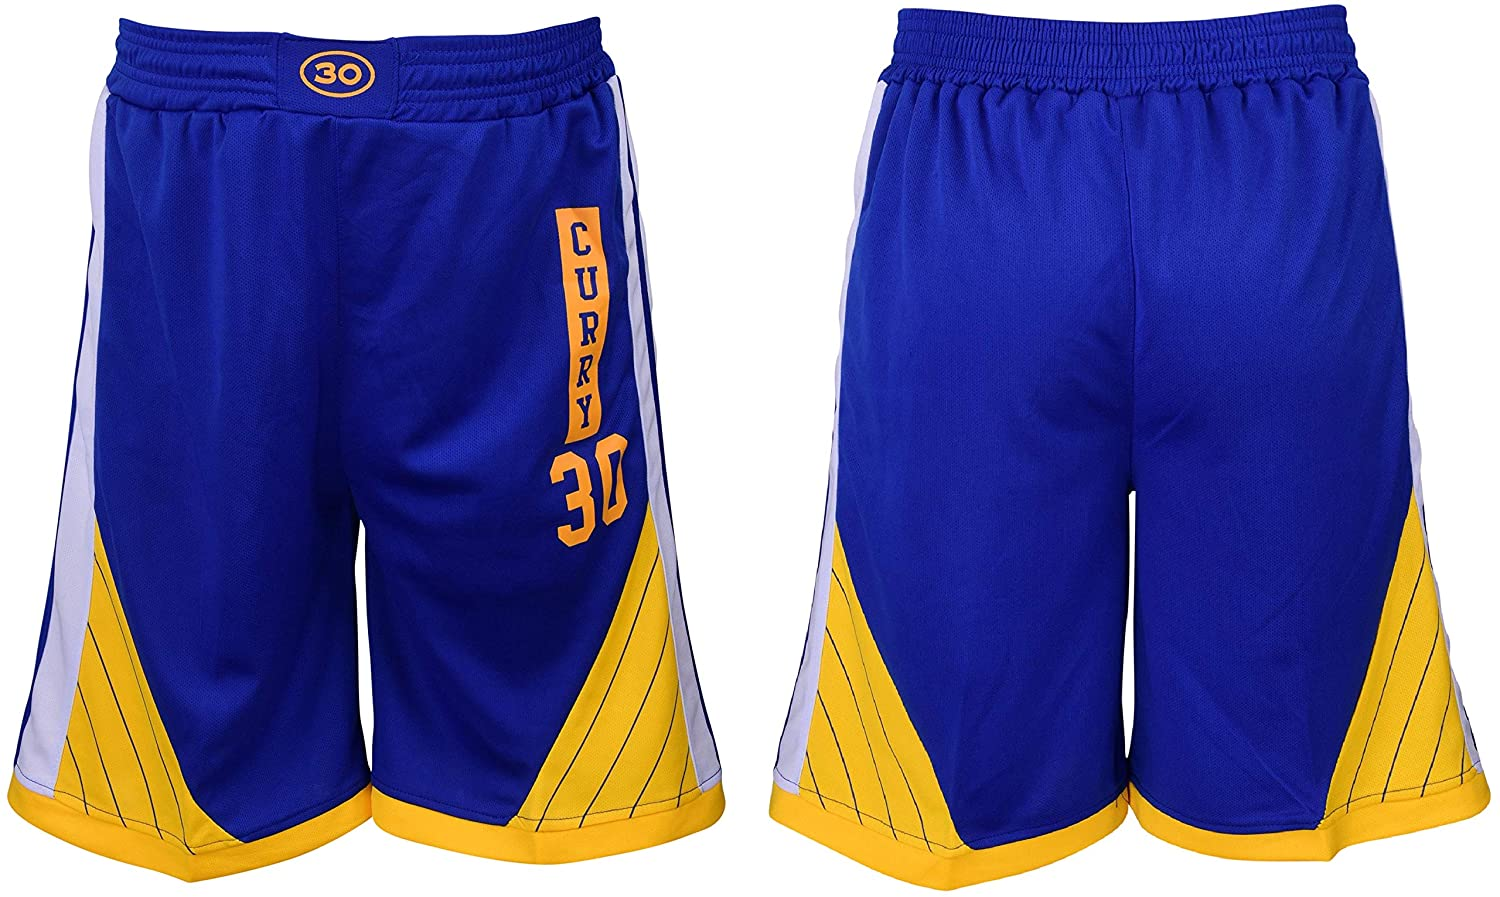 185325a74694 Amazon.com   Icer Brands Steph Curry Basketball Shorts Blue Kids Youth  Sizes Premium Quality   Sports   Outdoors